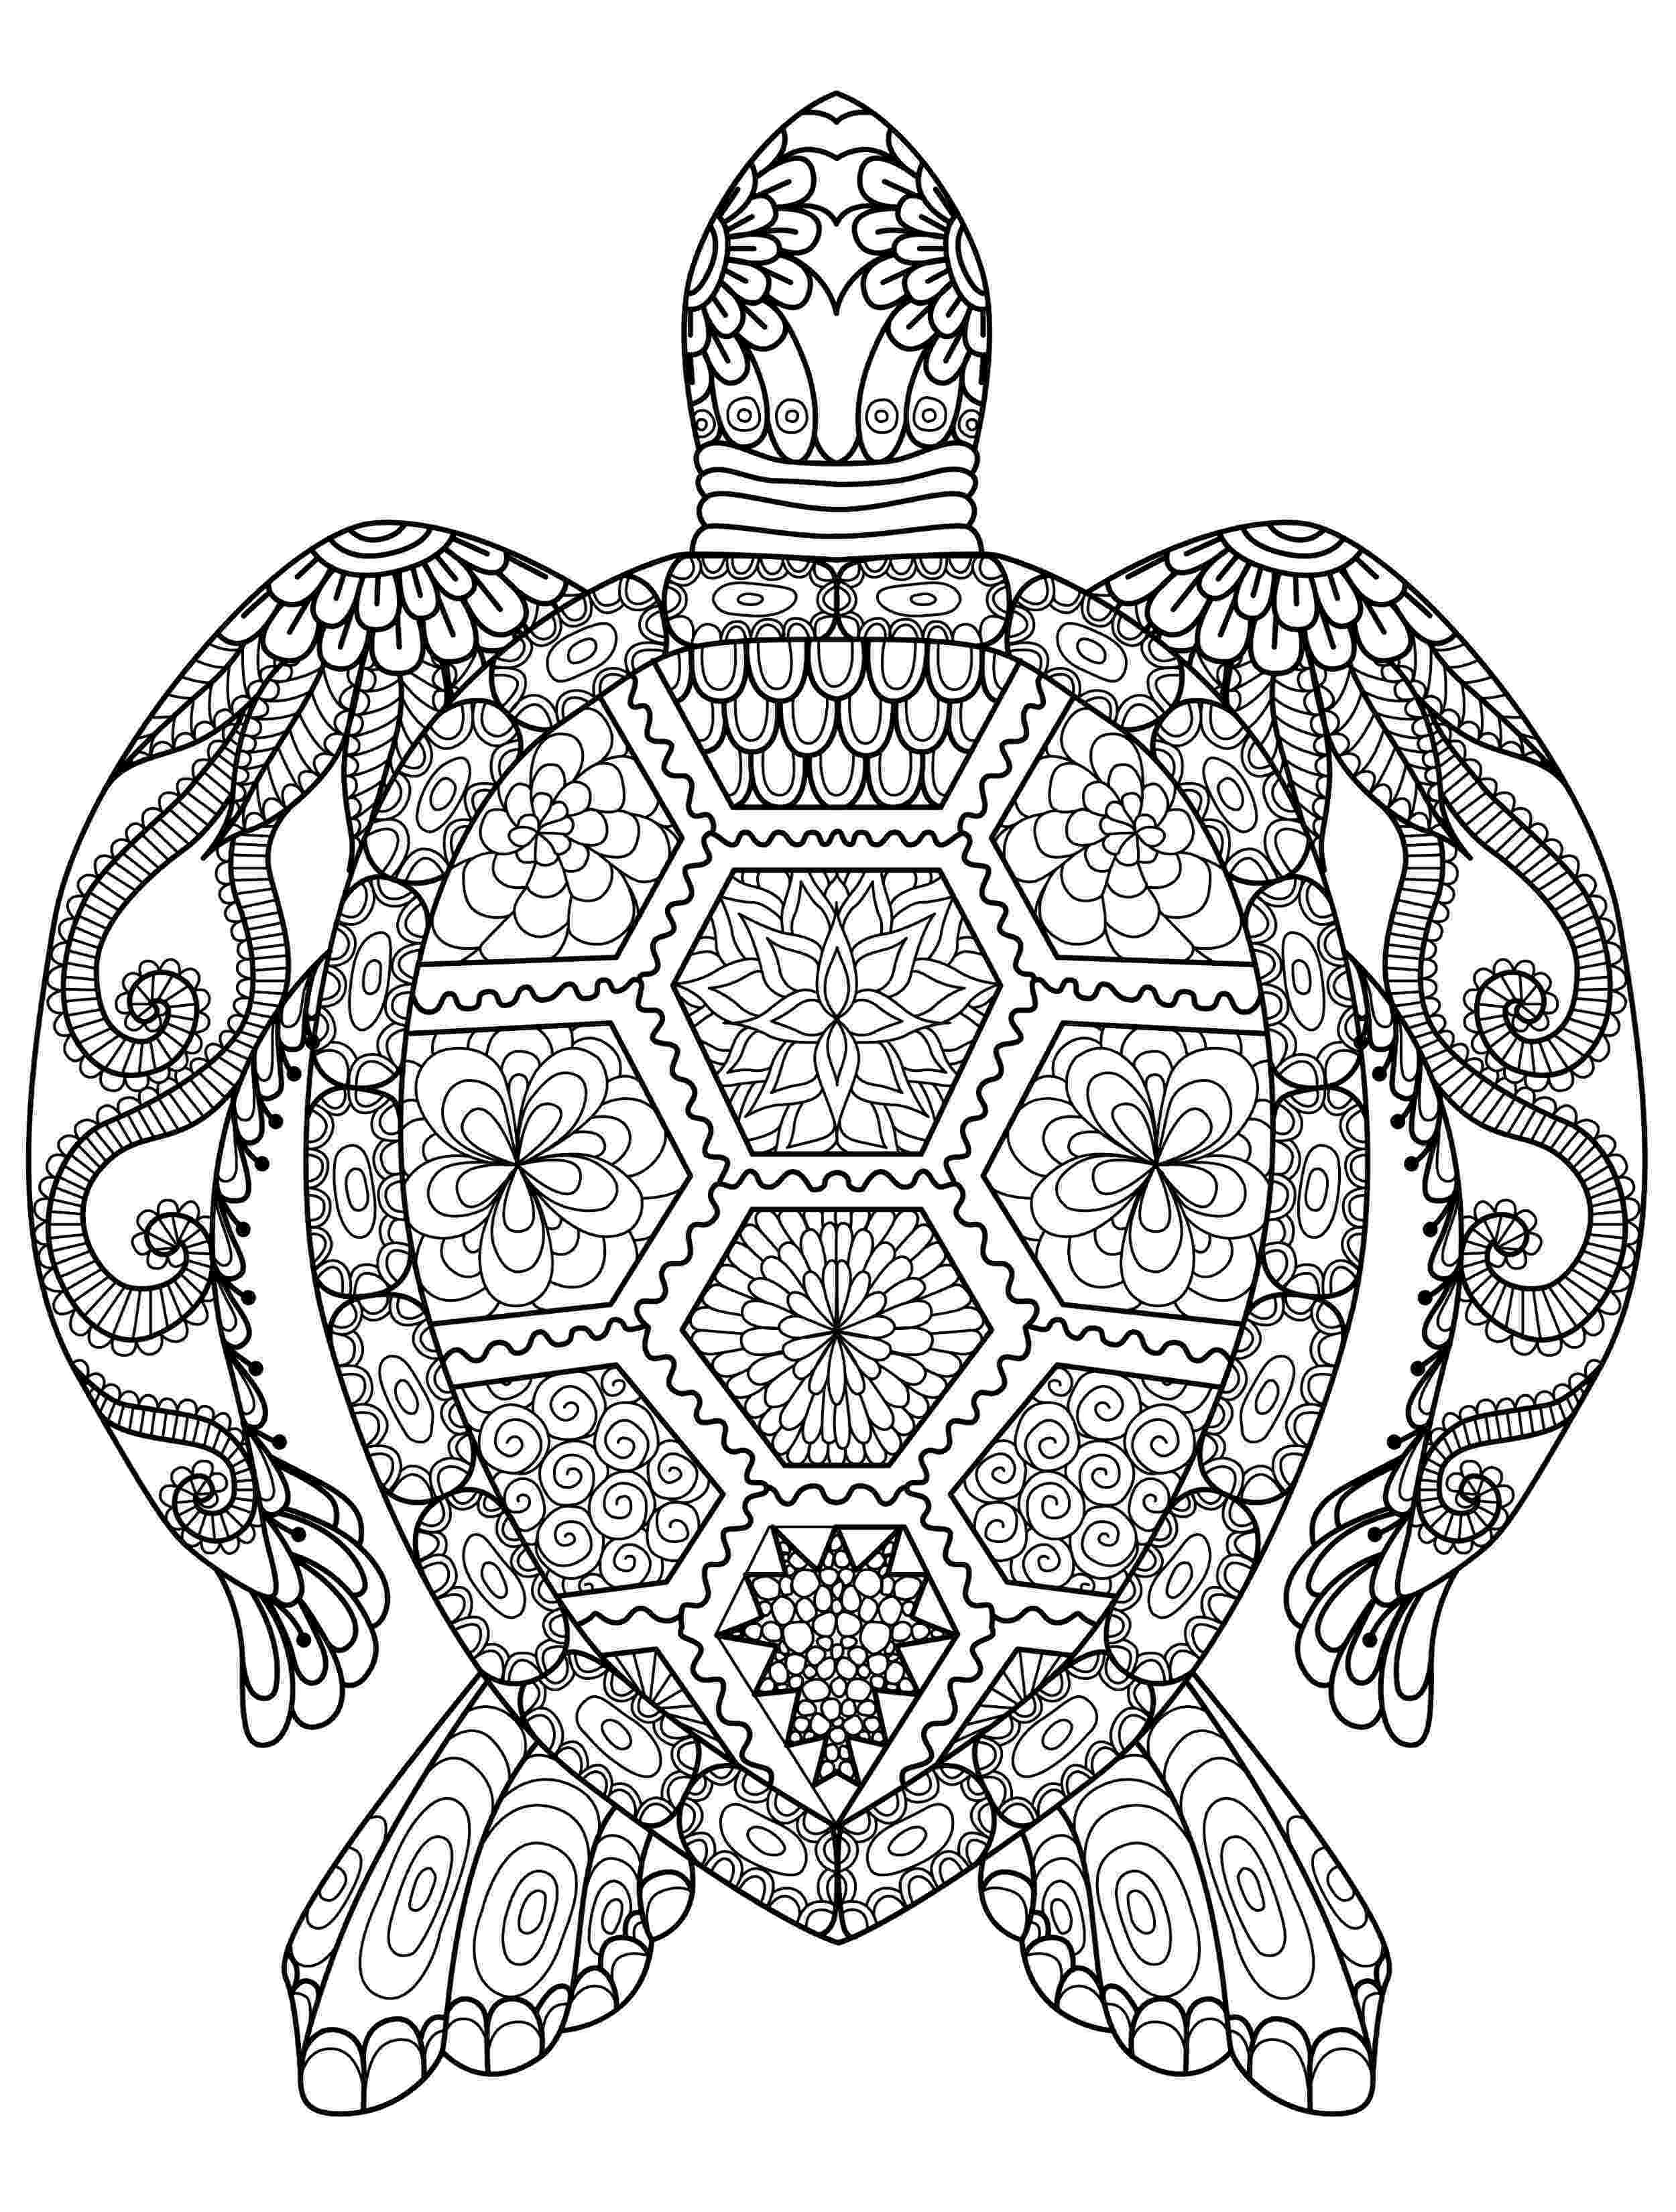 free coloring pages adults online animal coloring pages for adults best coloring pages for adults pages online free coloring